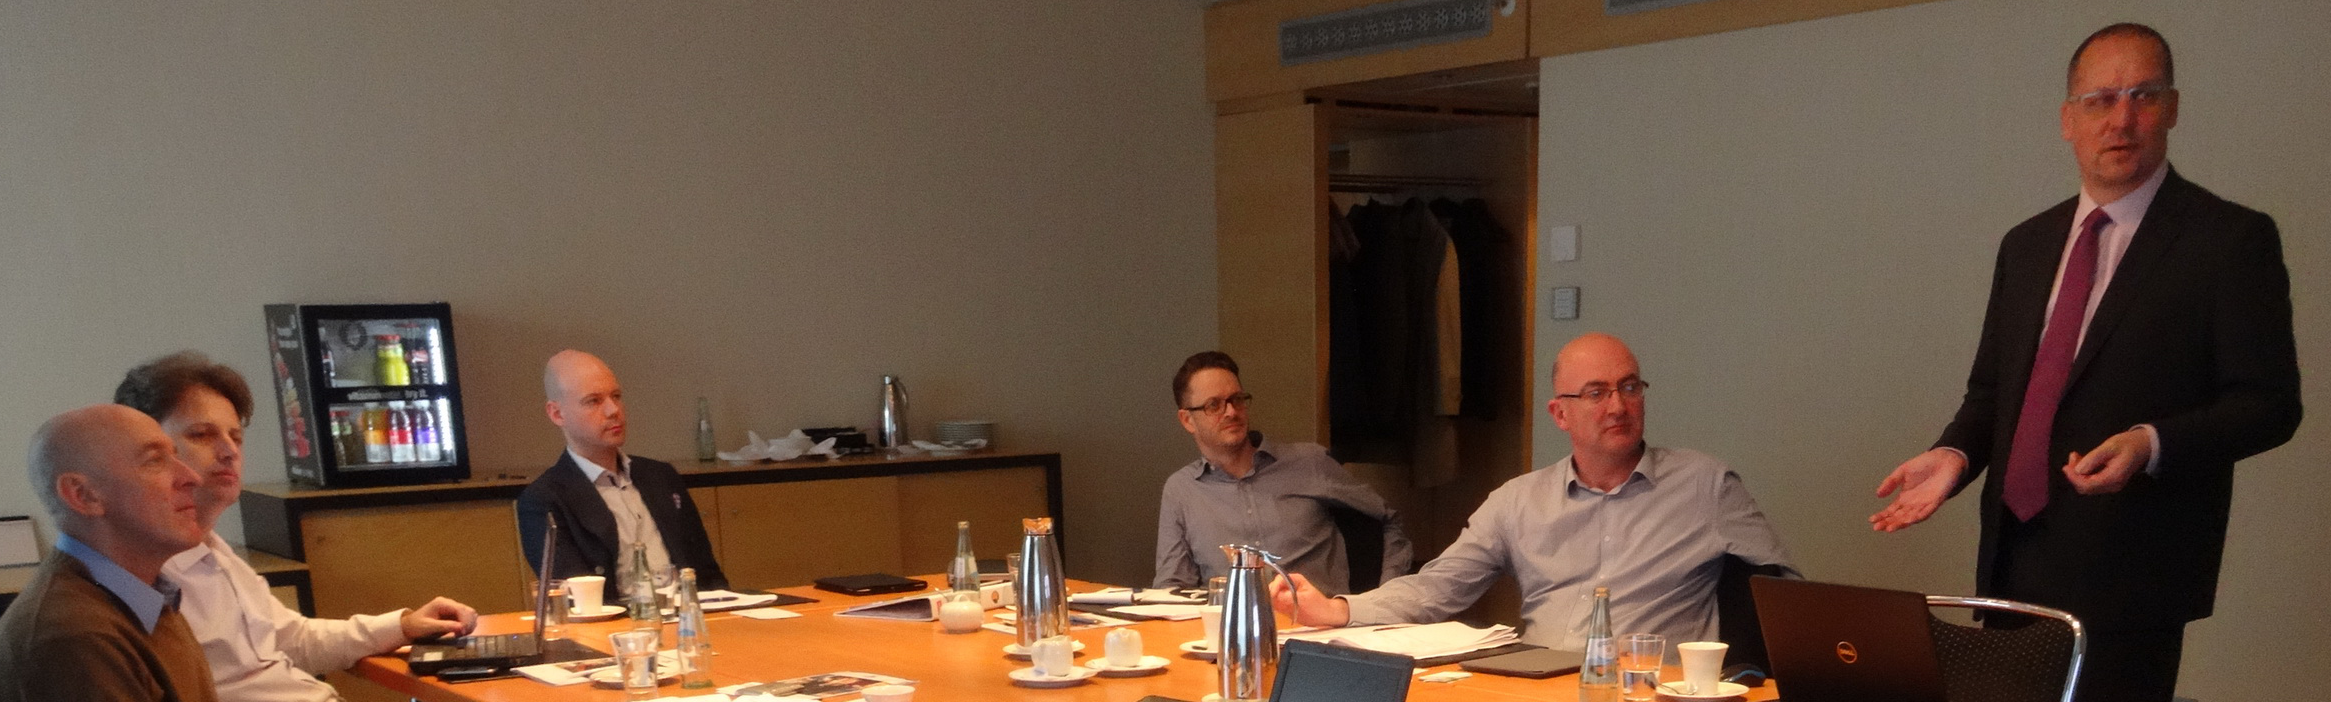 Heiner Lehr (far right) presents to GLOBALG.A.P. technical livestock committee .